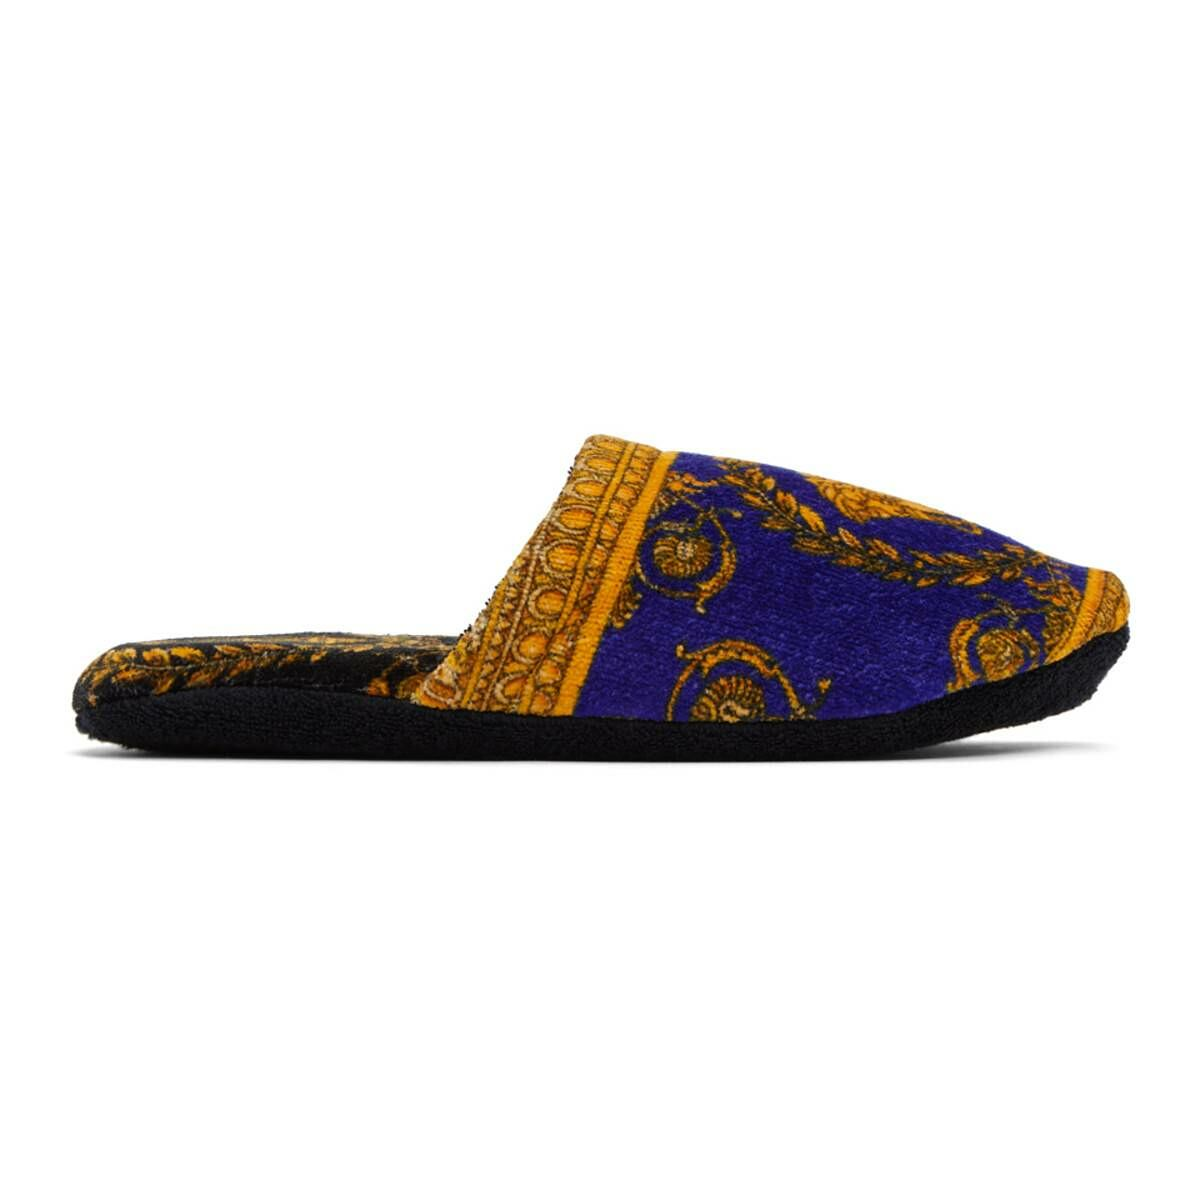 Versace Blue Baroque Slippers Ssense USA MEN Men SHOES Mens LOAFERS